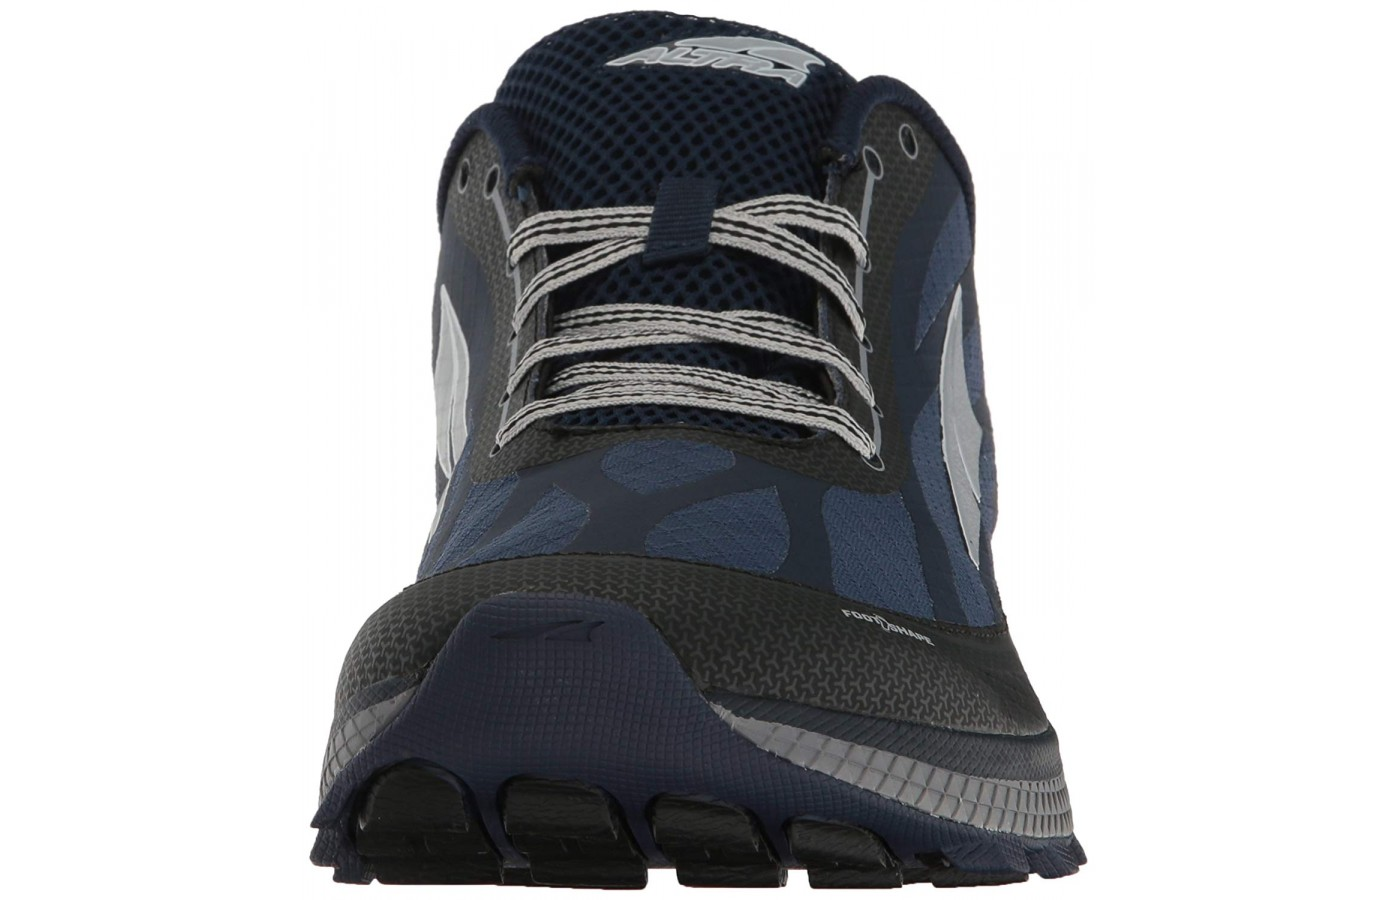 The outsole of the shoe is good for tough terrain.